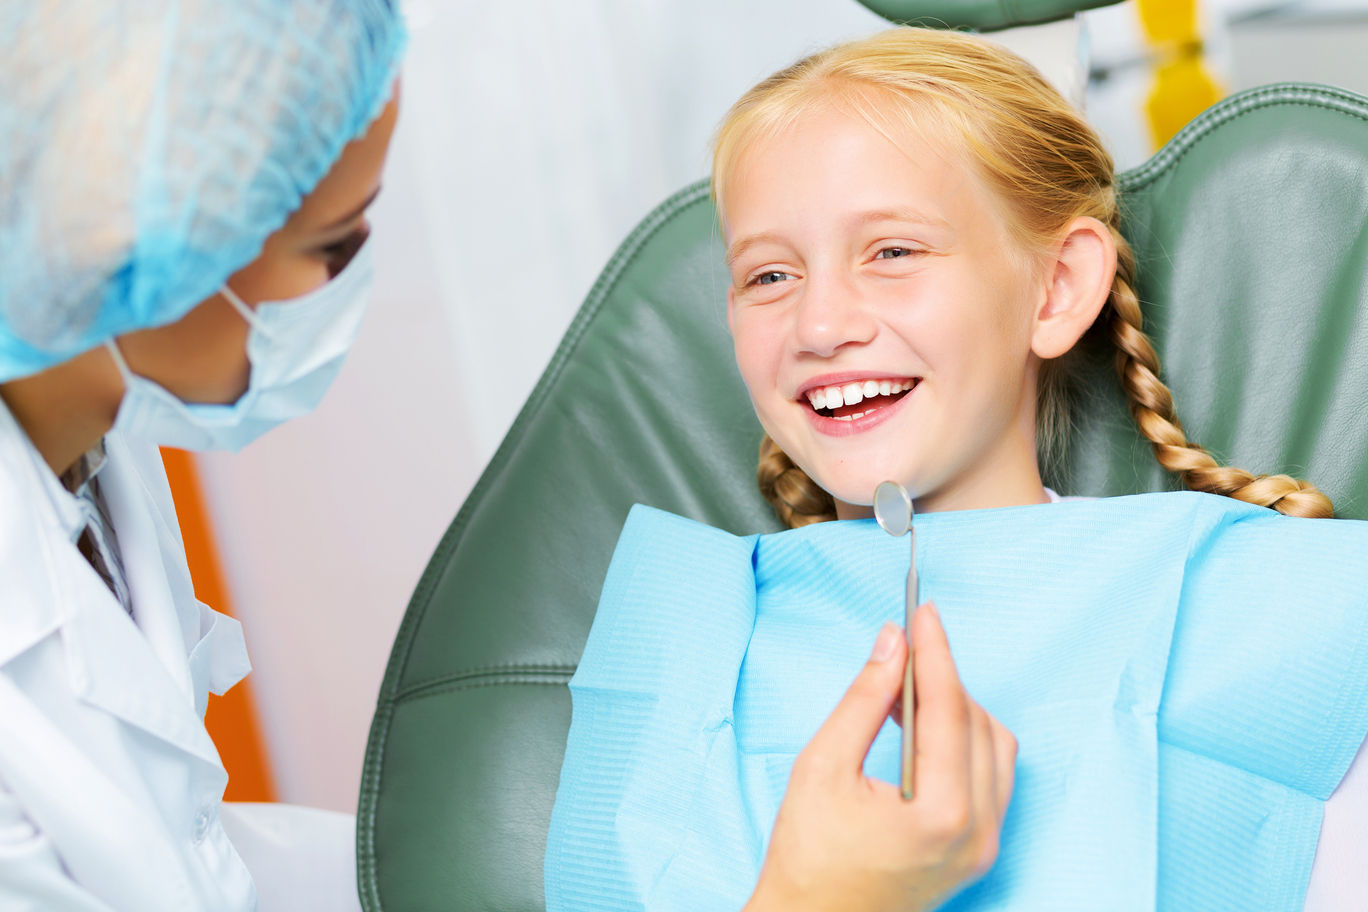 Take care of your child's teeth